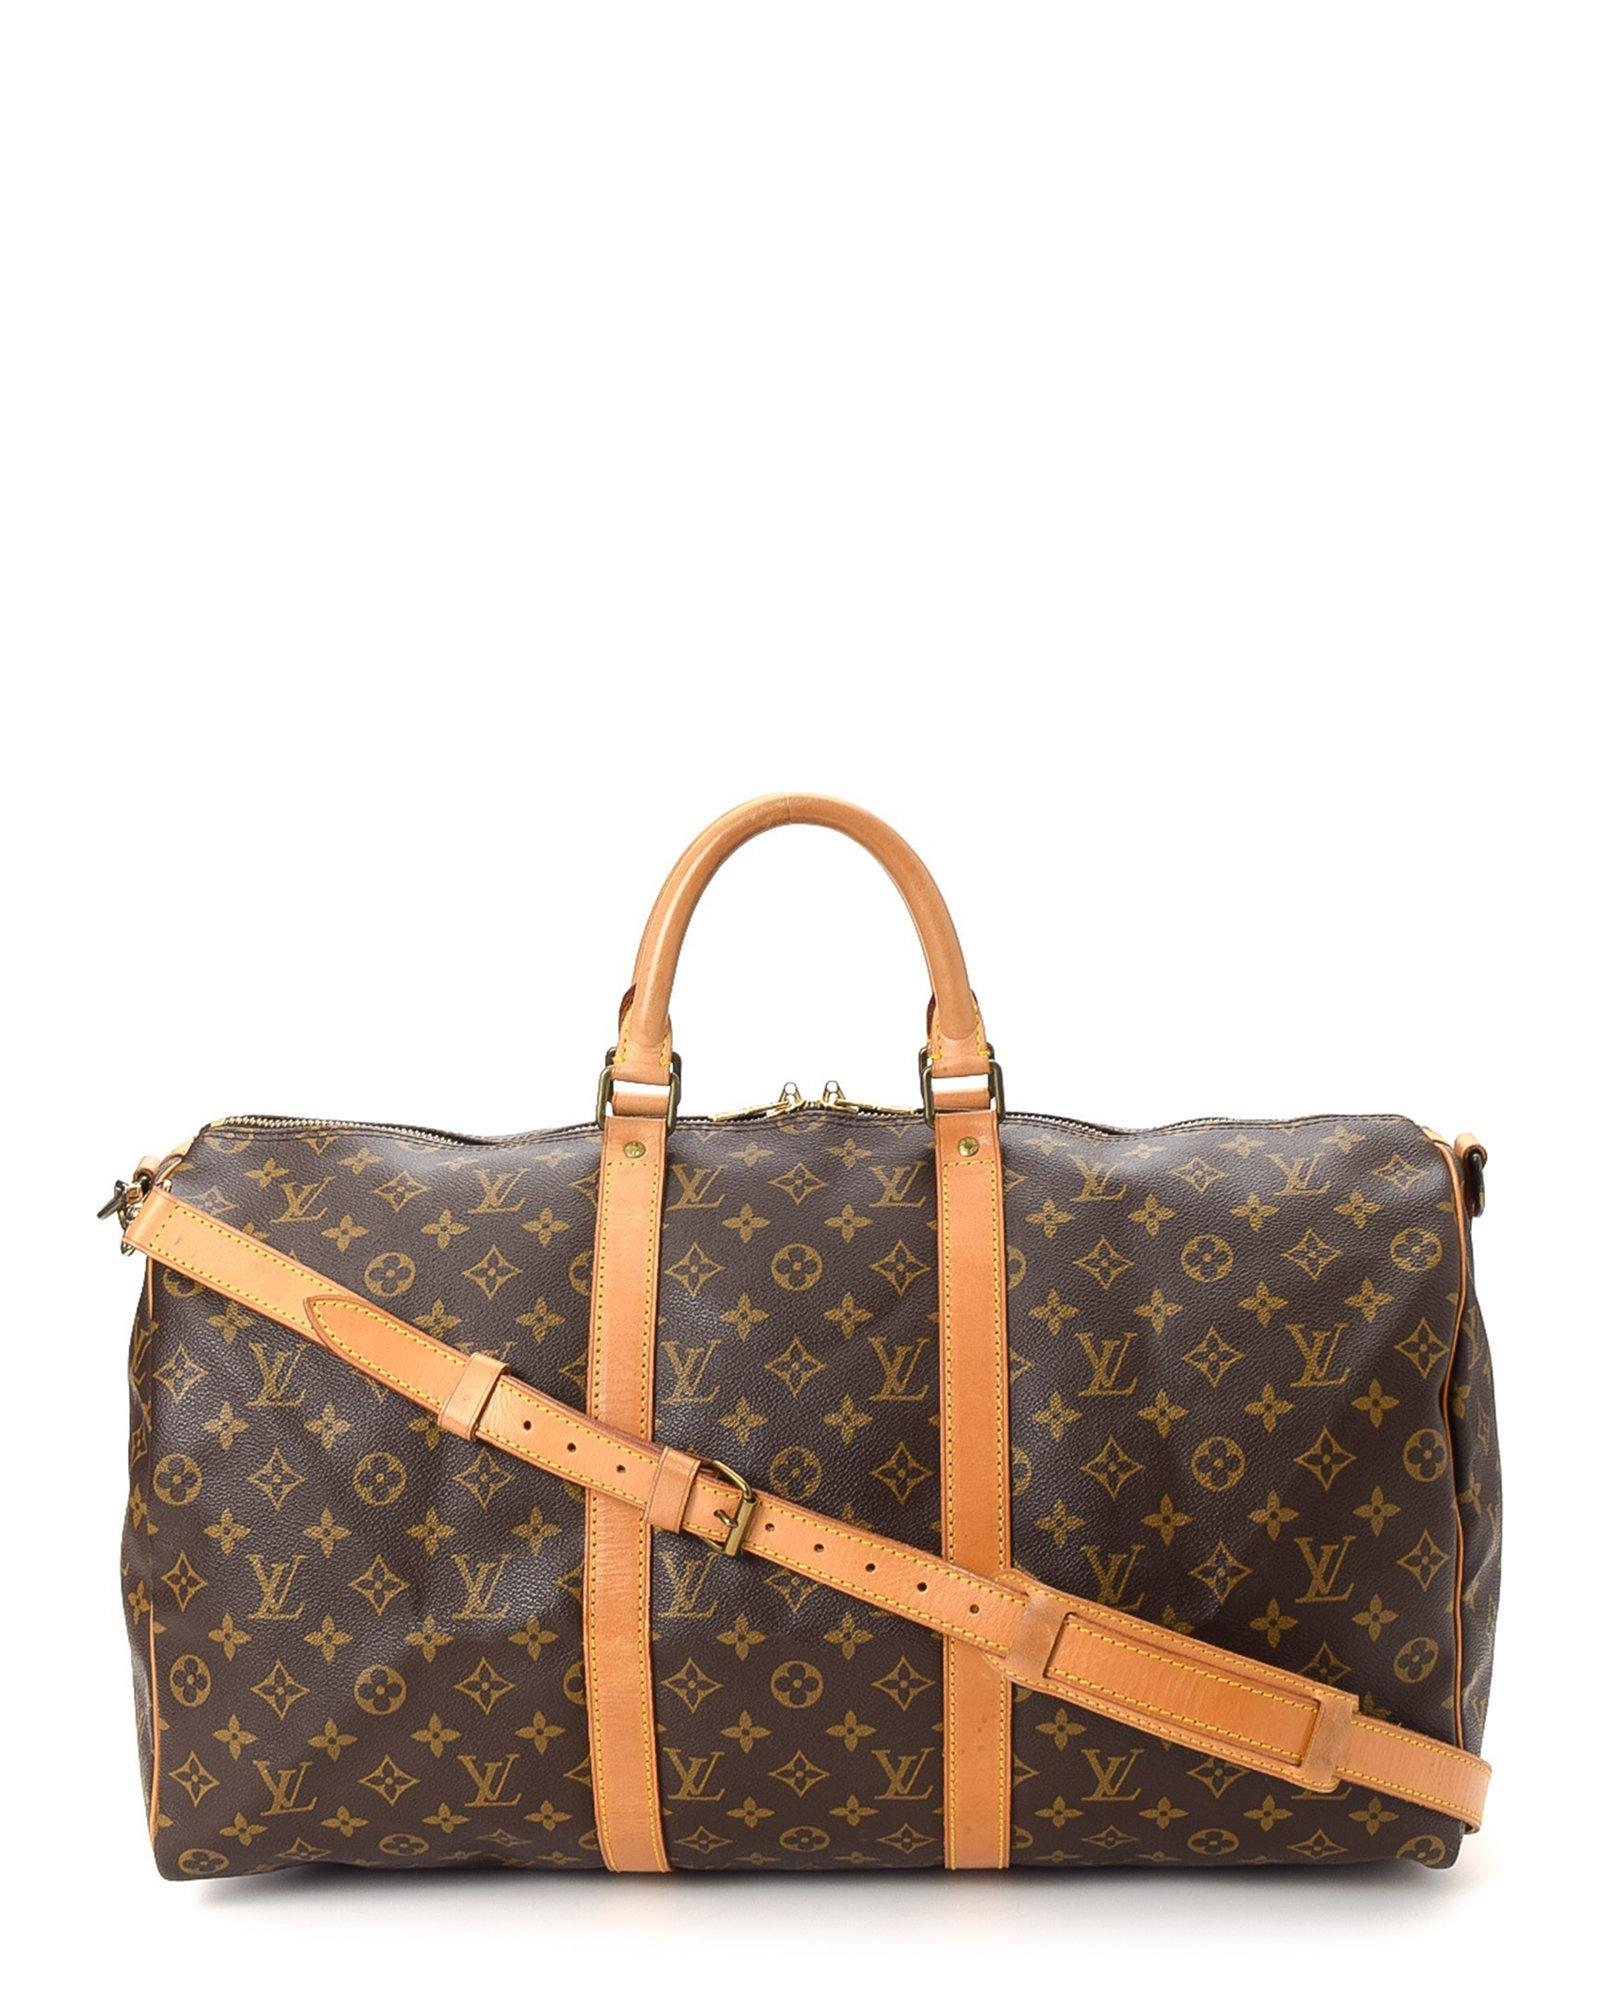 5d71300f53f6 Lyst - Louis Vuitton Keepall 50 Bandouliere - Vintage in Brown